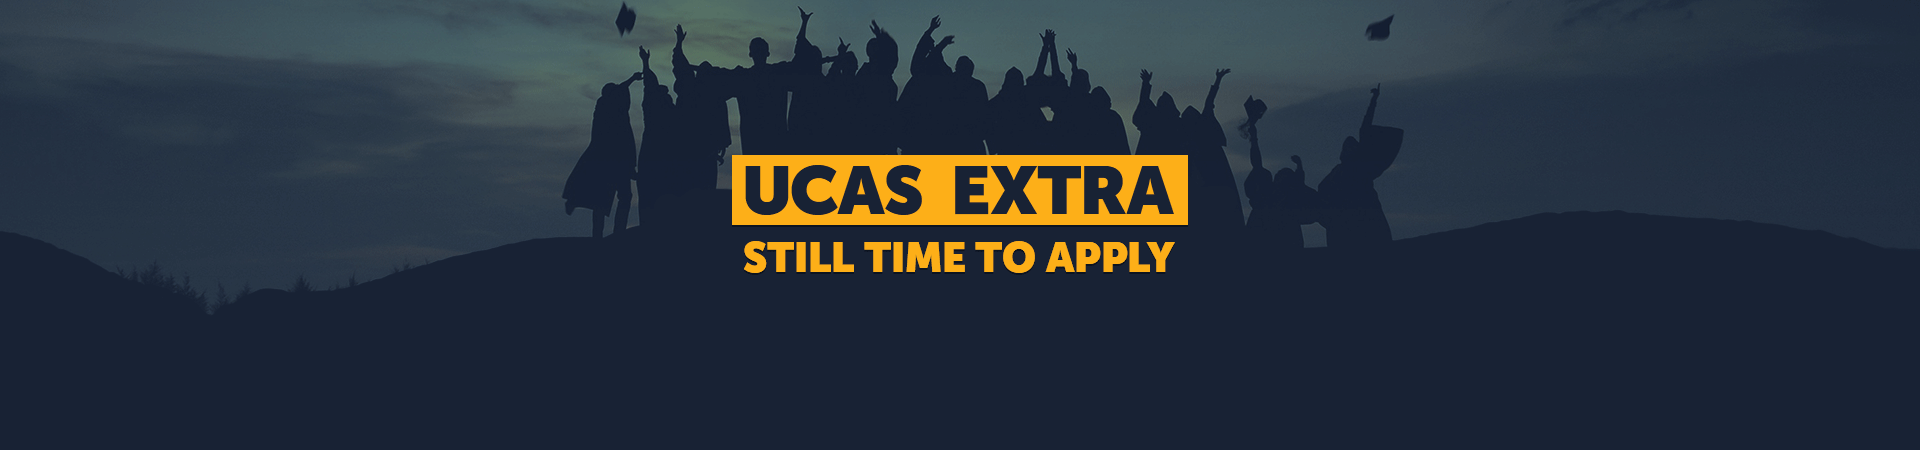 UCAS Extra - still time to apply